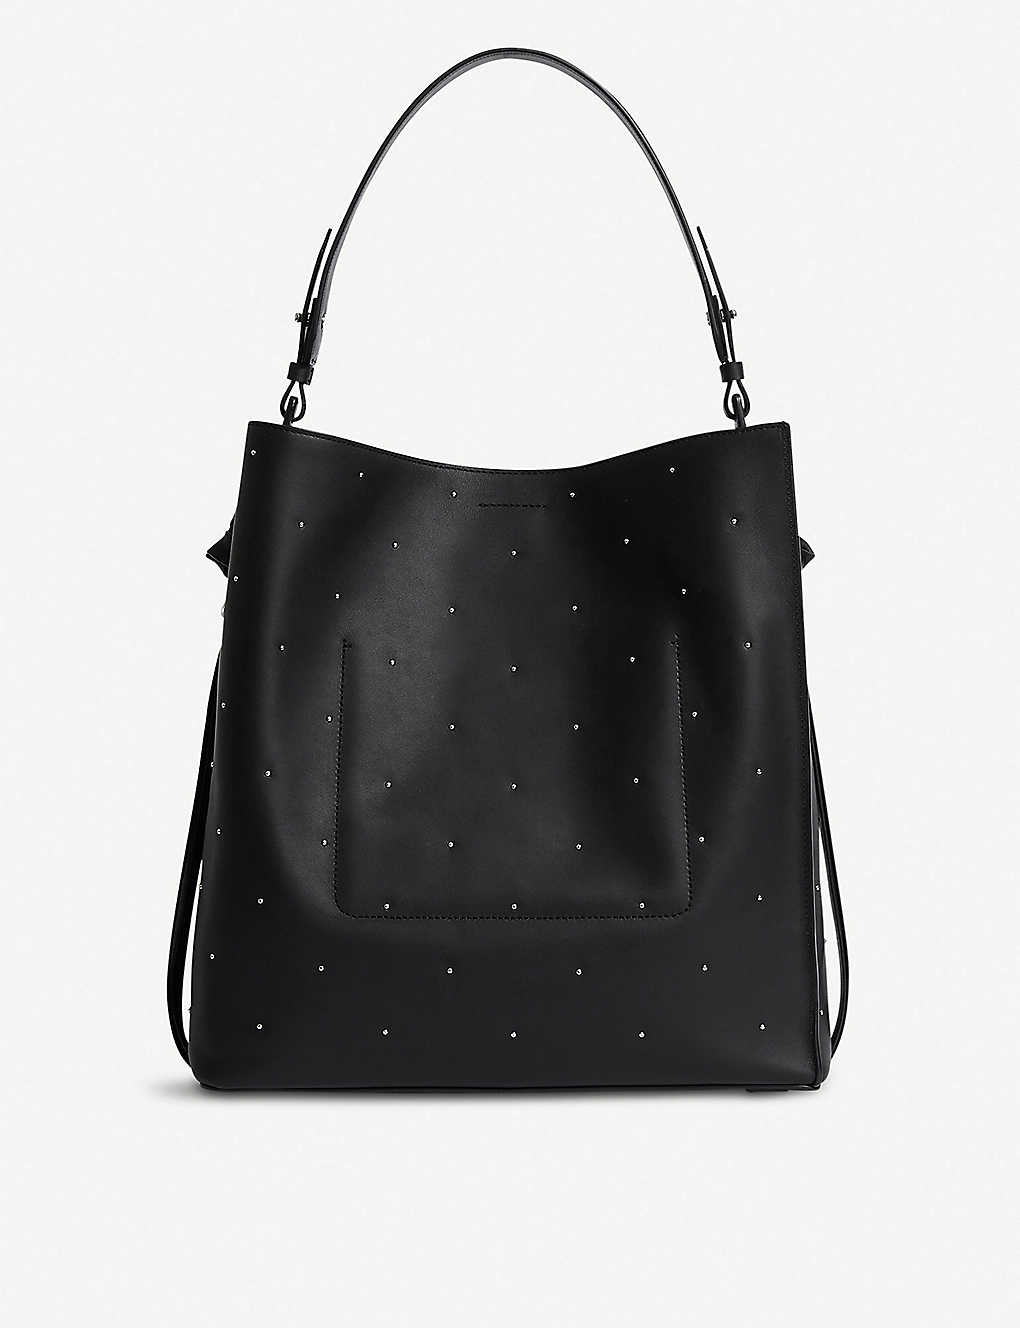 dbeced74e7 ALLSAINTS - Kathi North South small leather tote bag